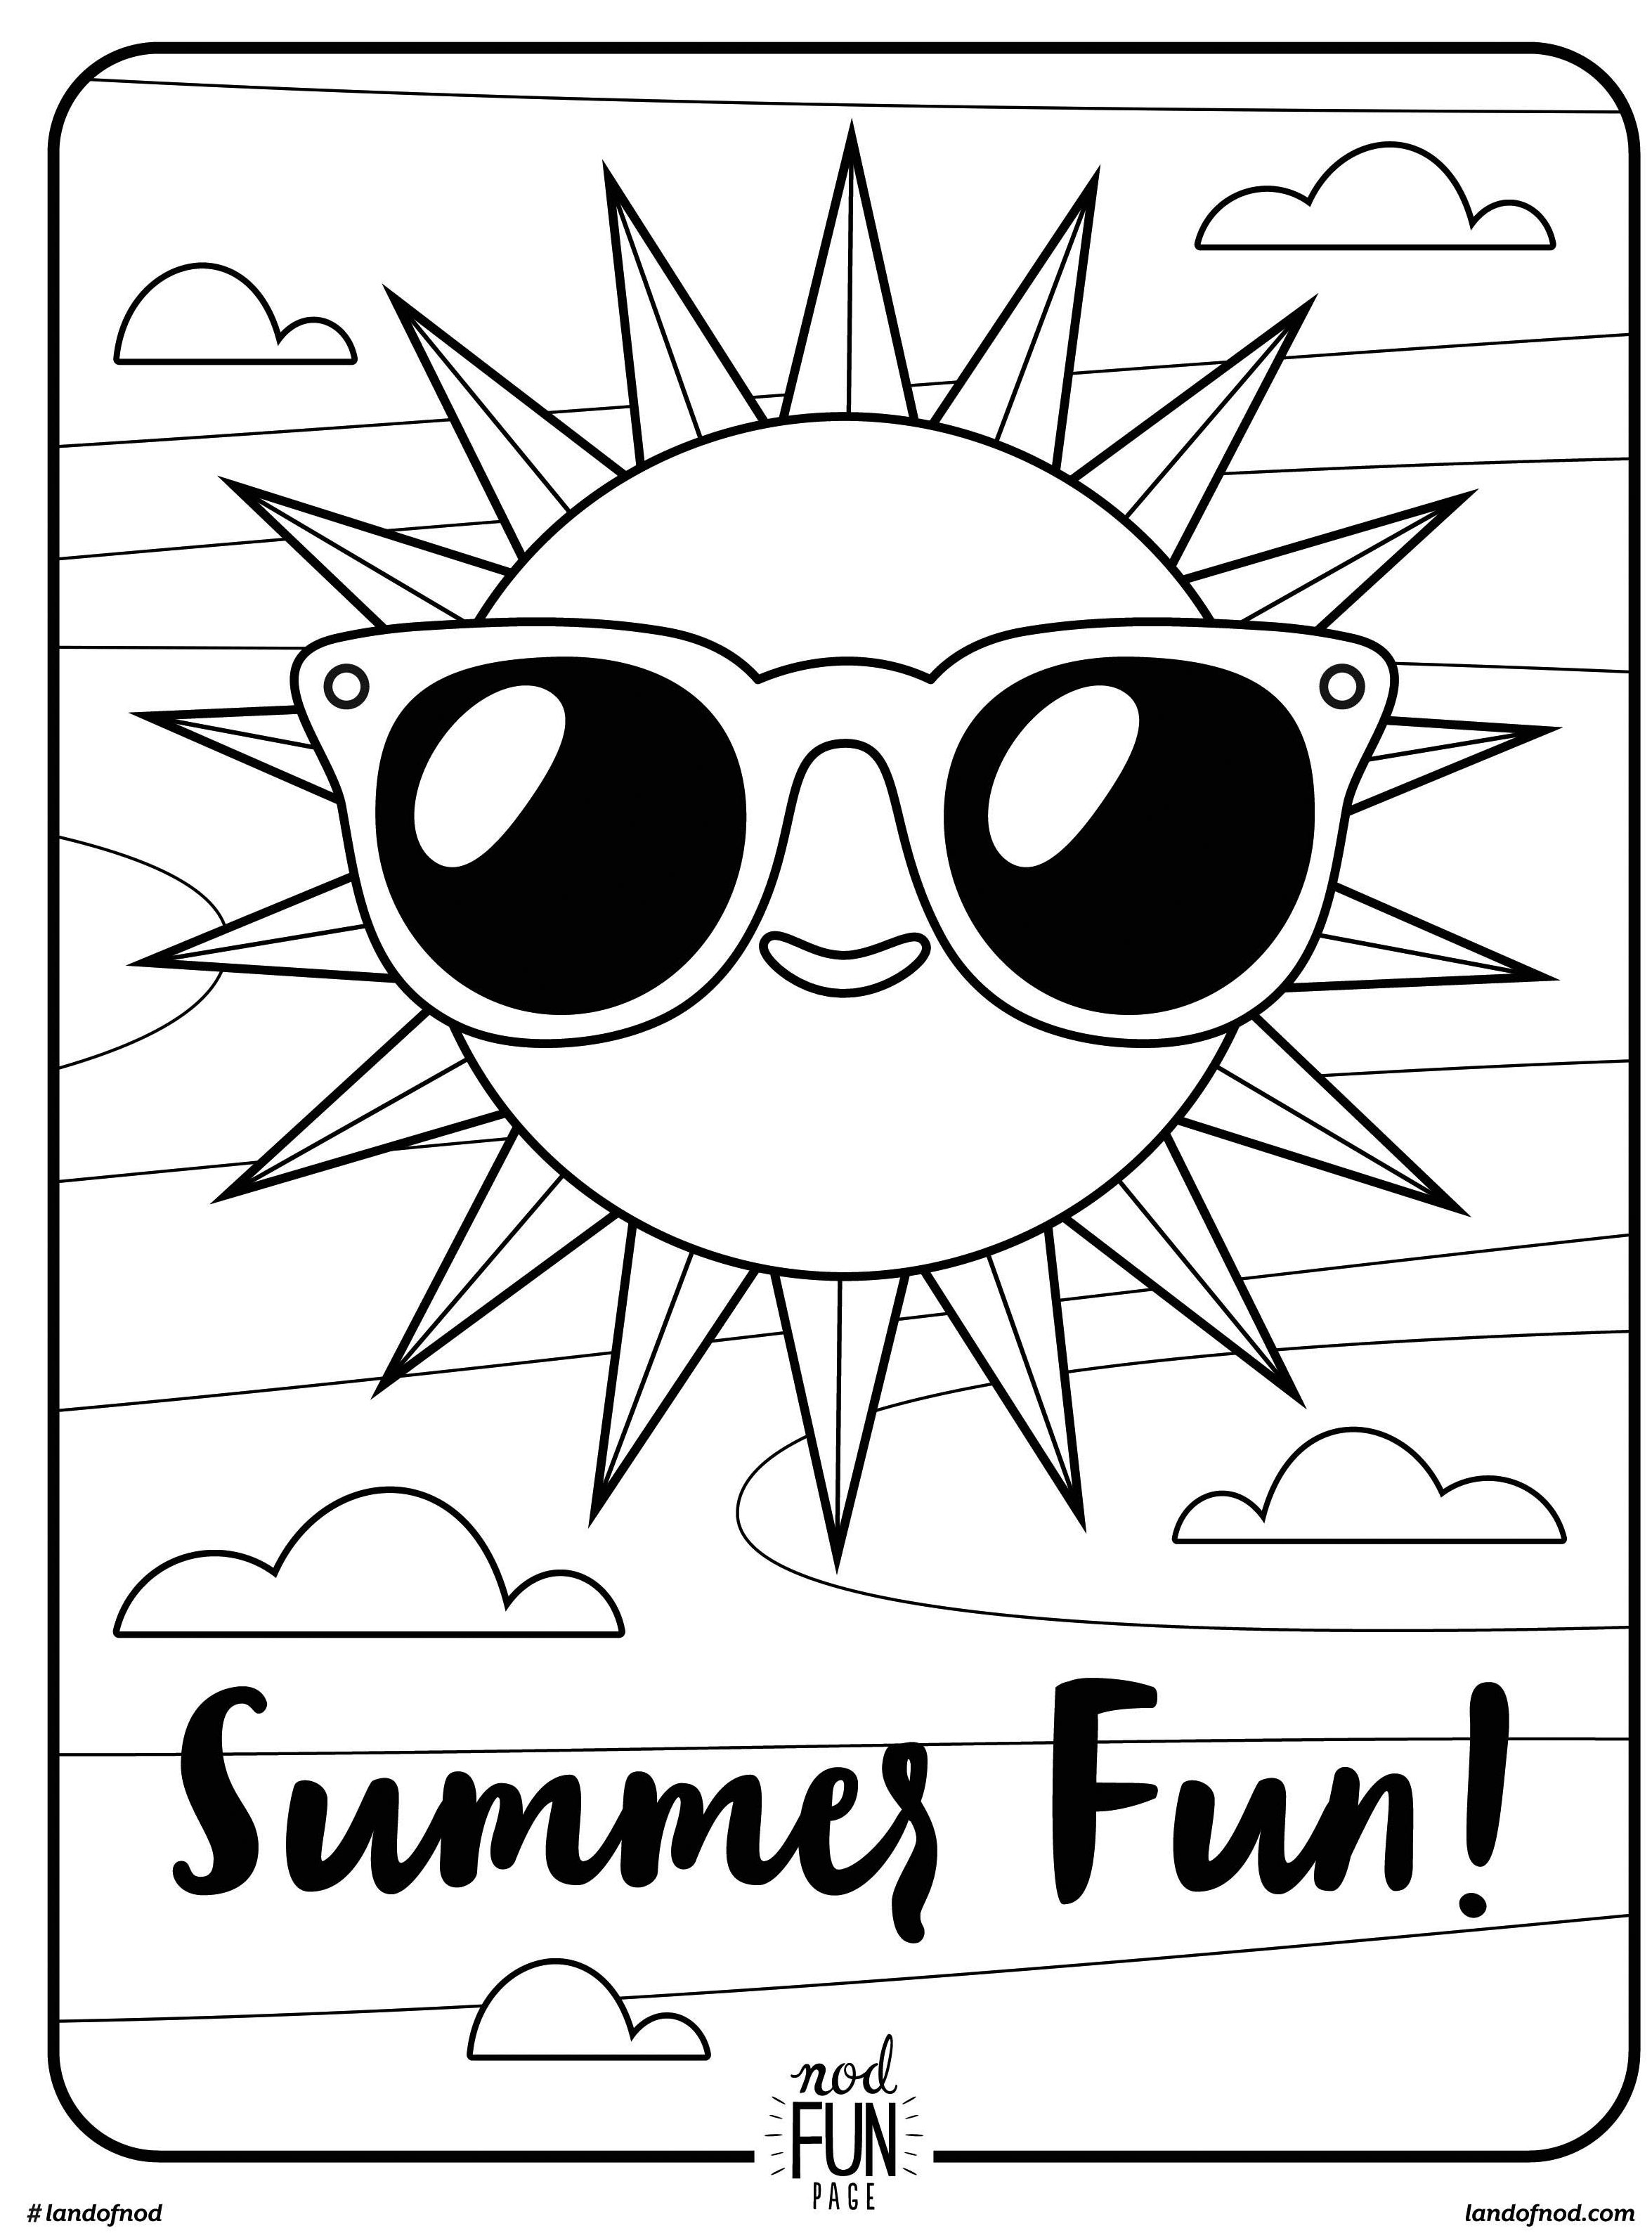 fun coloring pages to print 40 exclusive kids coloring pages ideas we need fun print pages coloring fun to